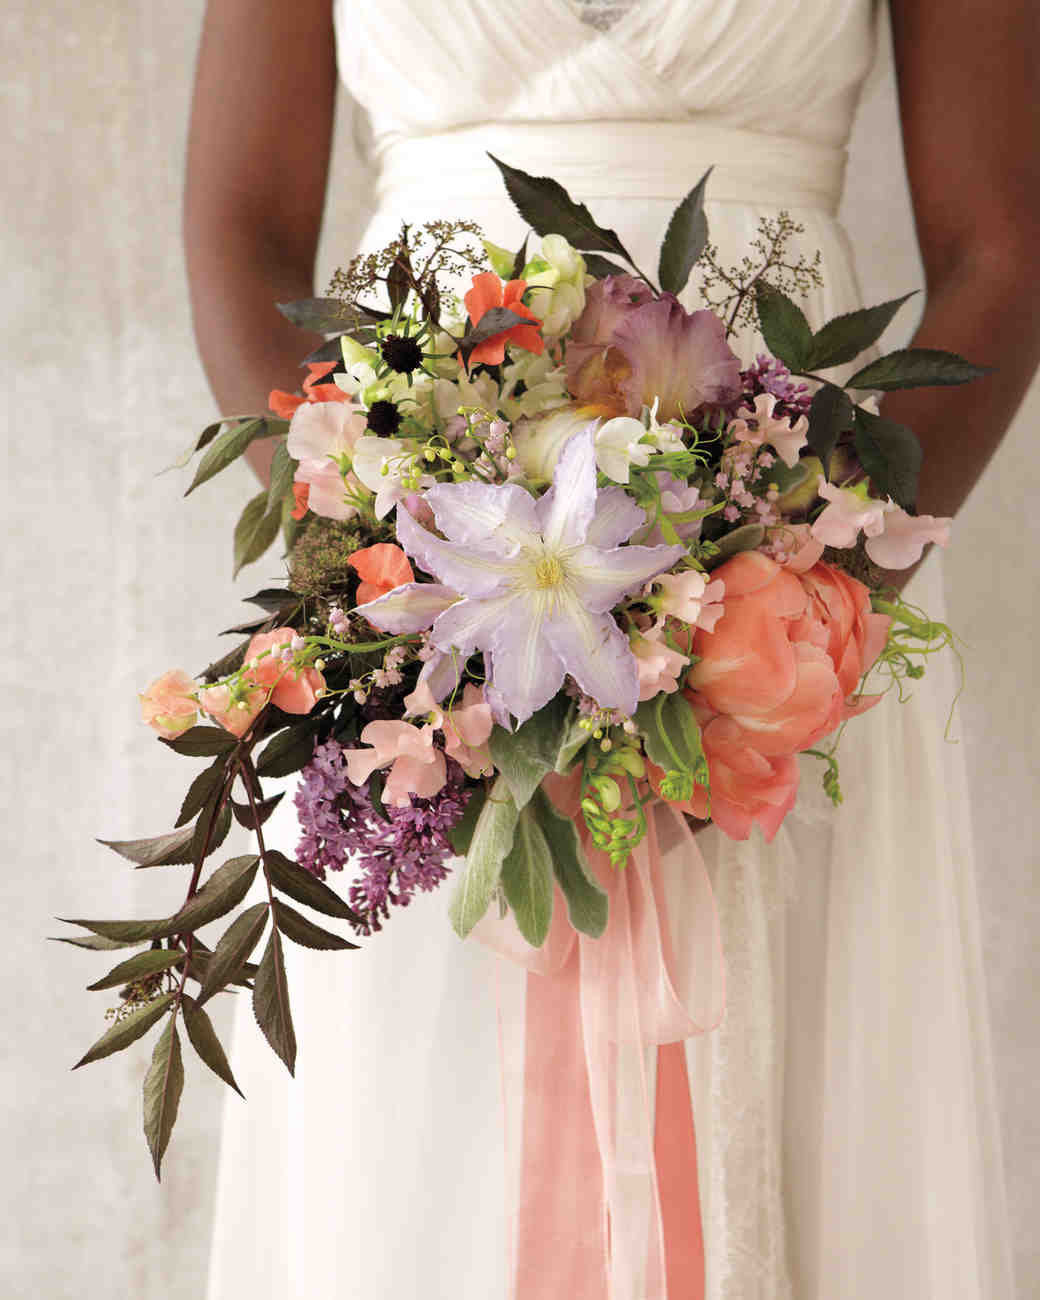 Spring Wedding Flower Ideas From The Industry's Best